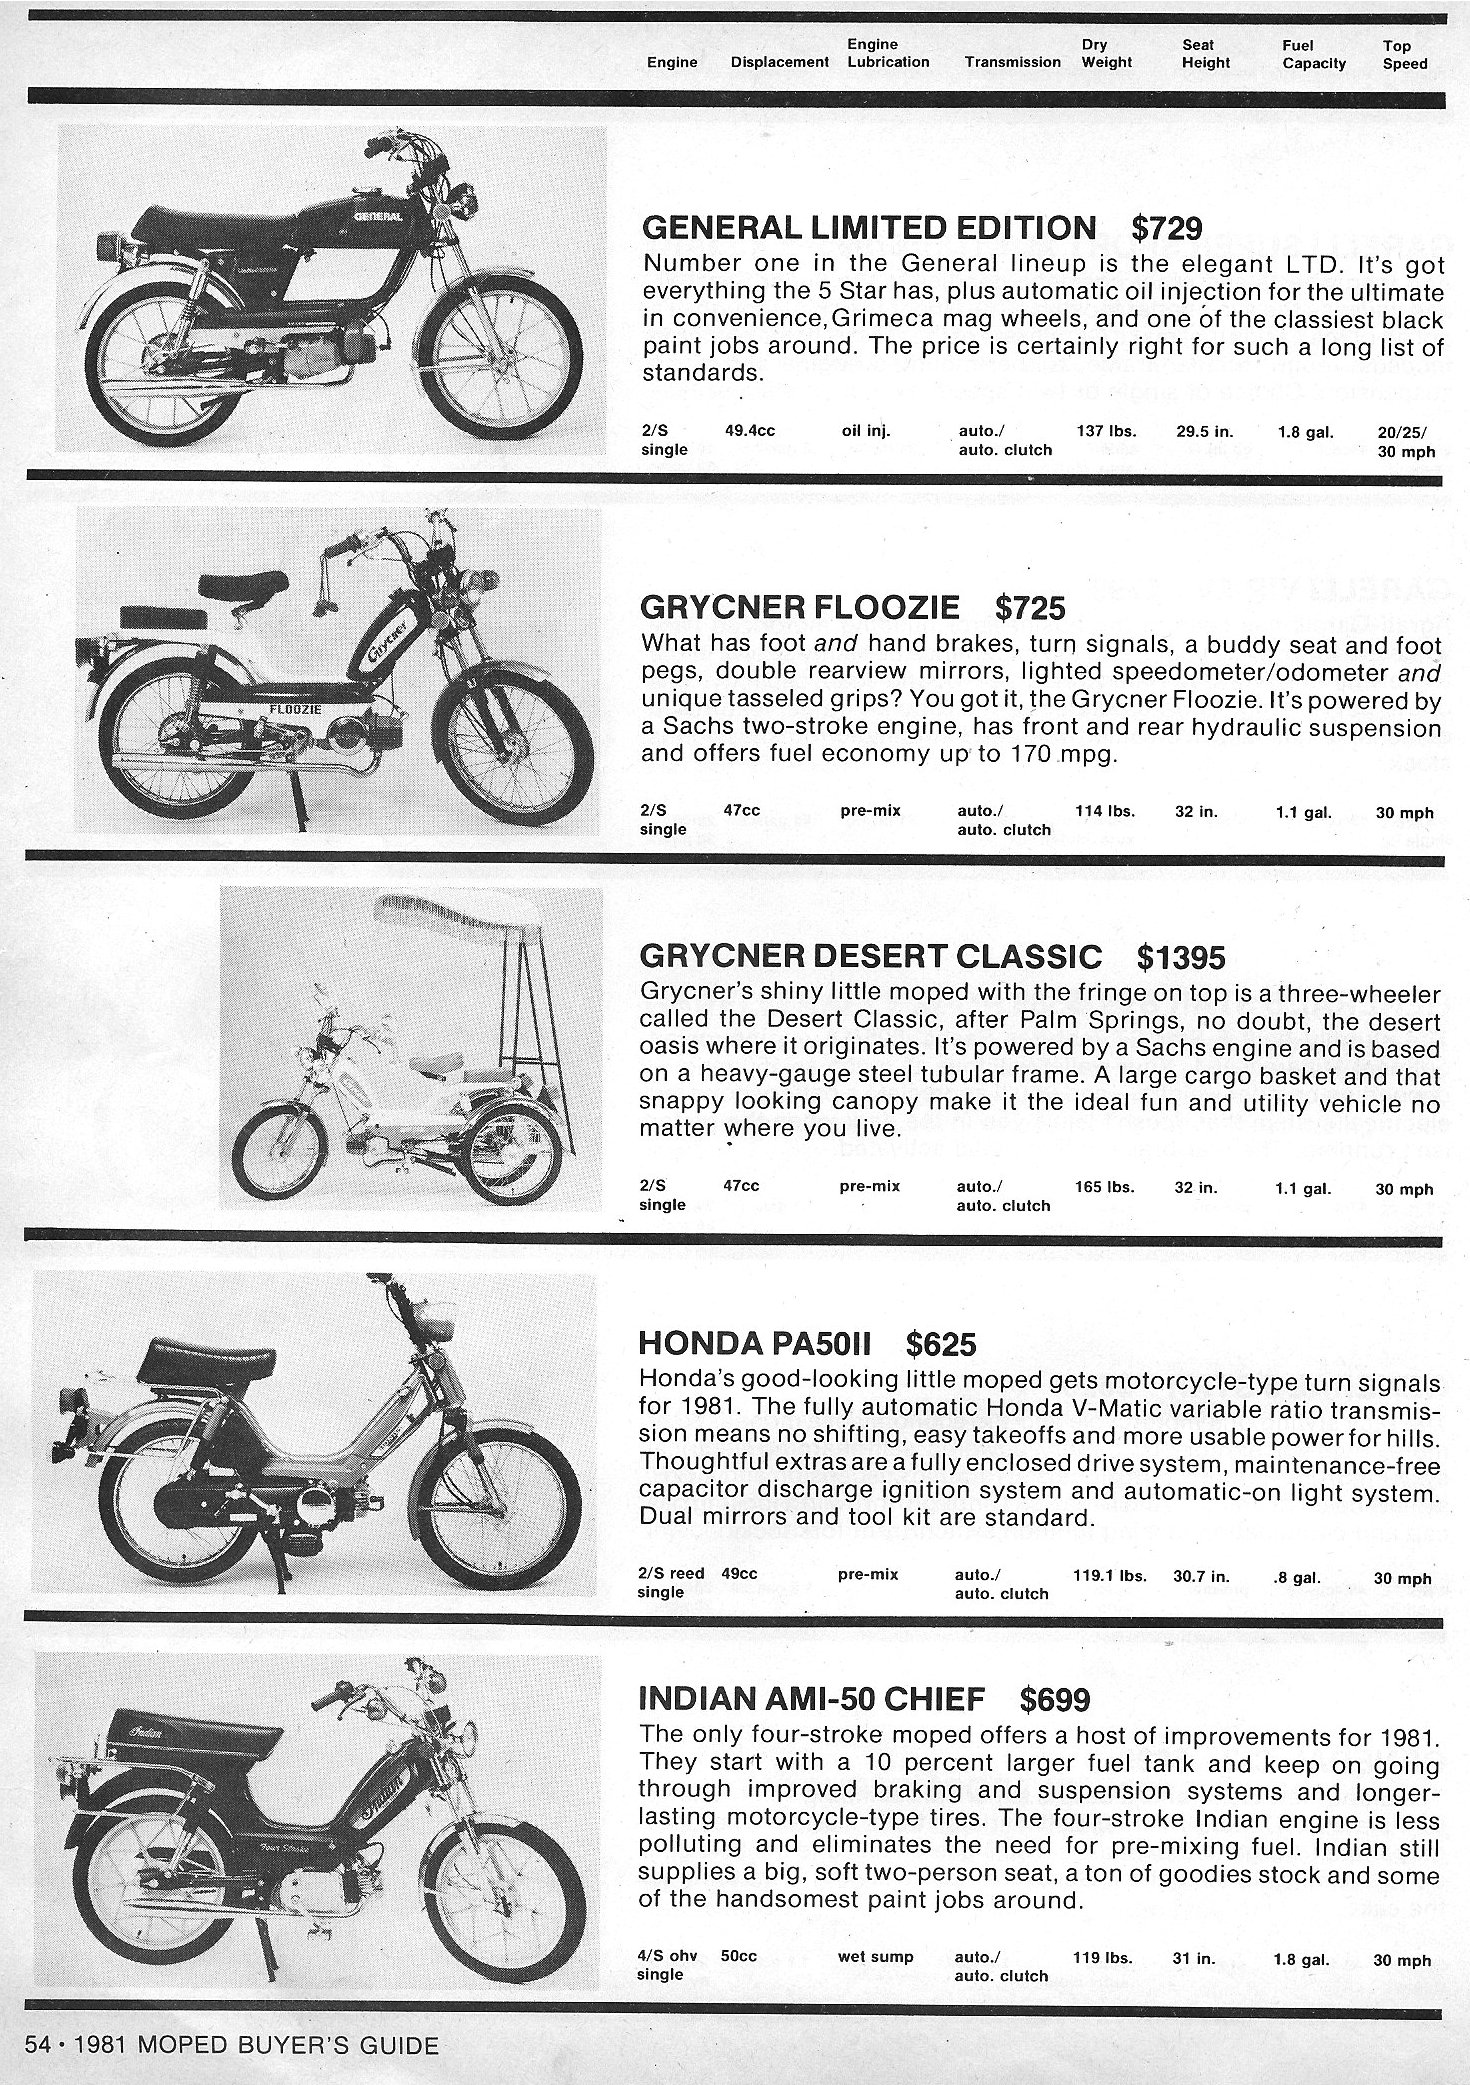 buyers guide acirc myrons mopeds 1981 guide p54